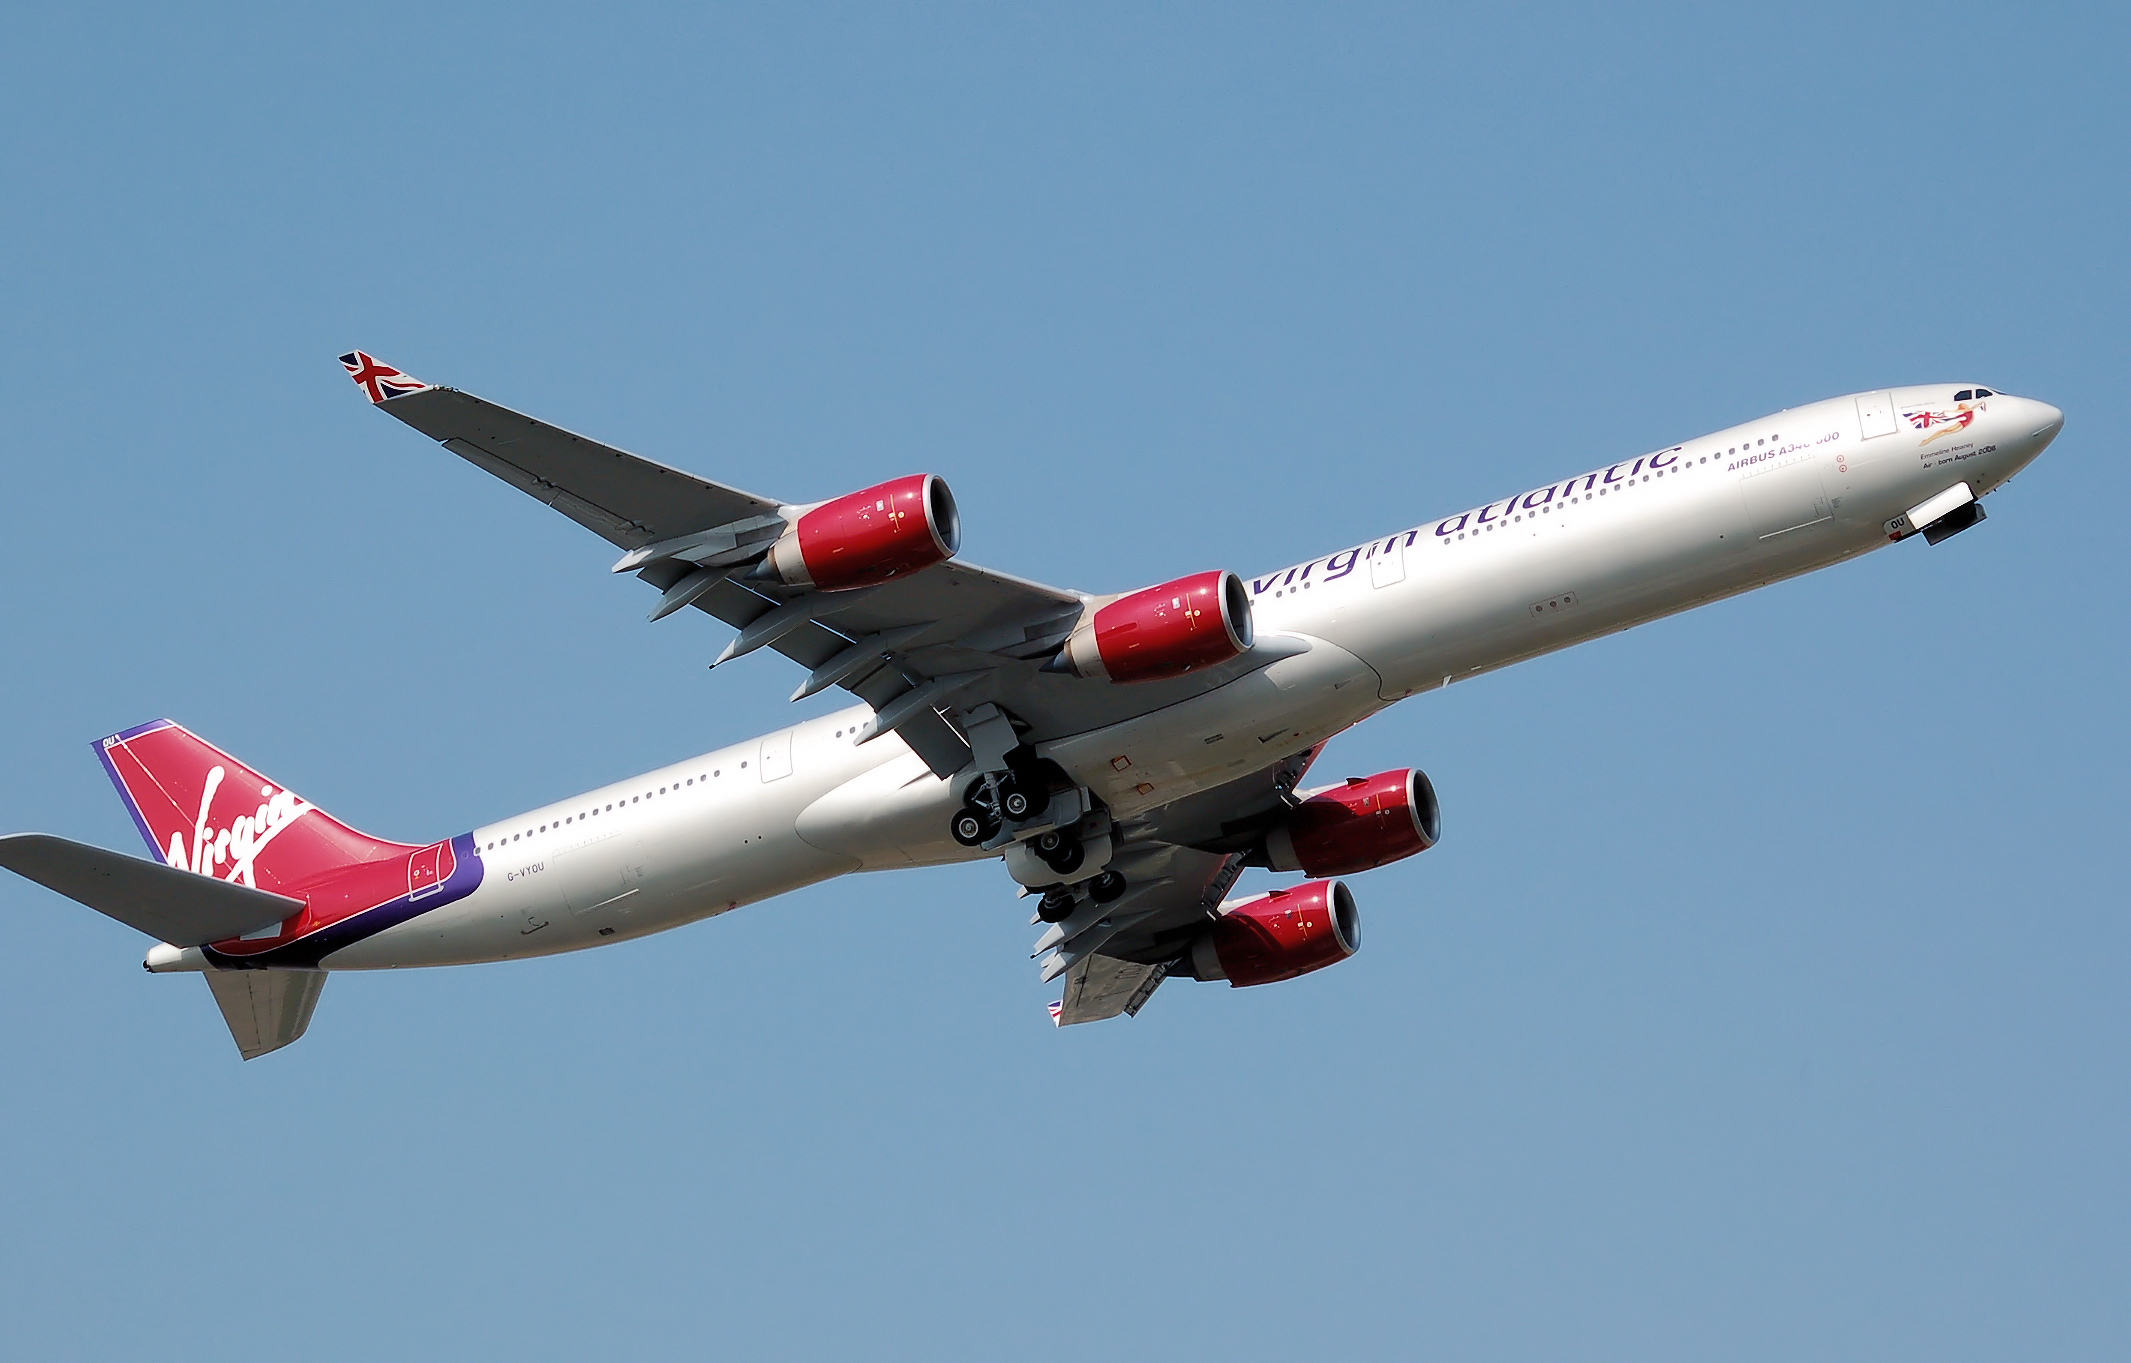 virgin atlantic airways essay Thesis-virgin atlantic airways is a subsidiary of the virgin group it is a uk based airline and its headquarters is located in the west sussex.